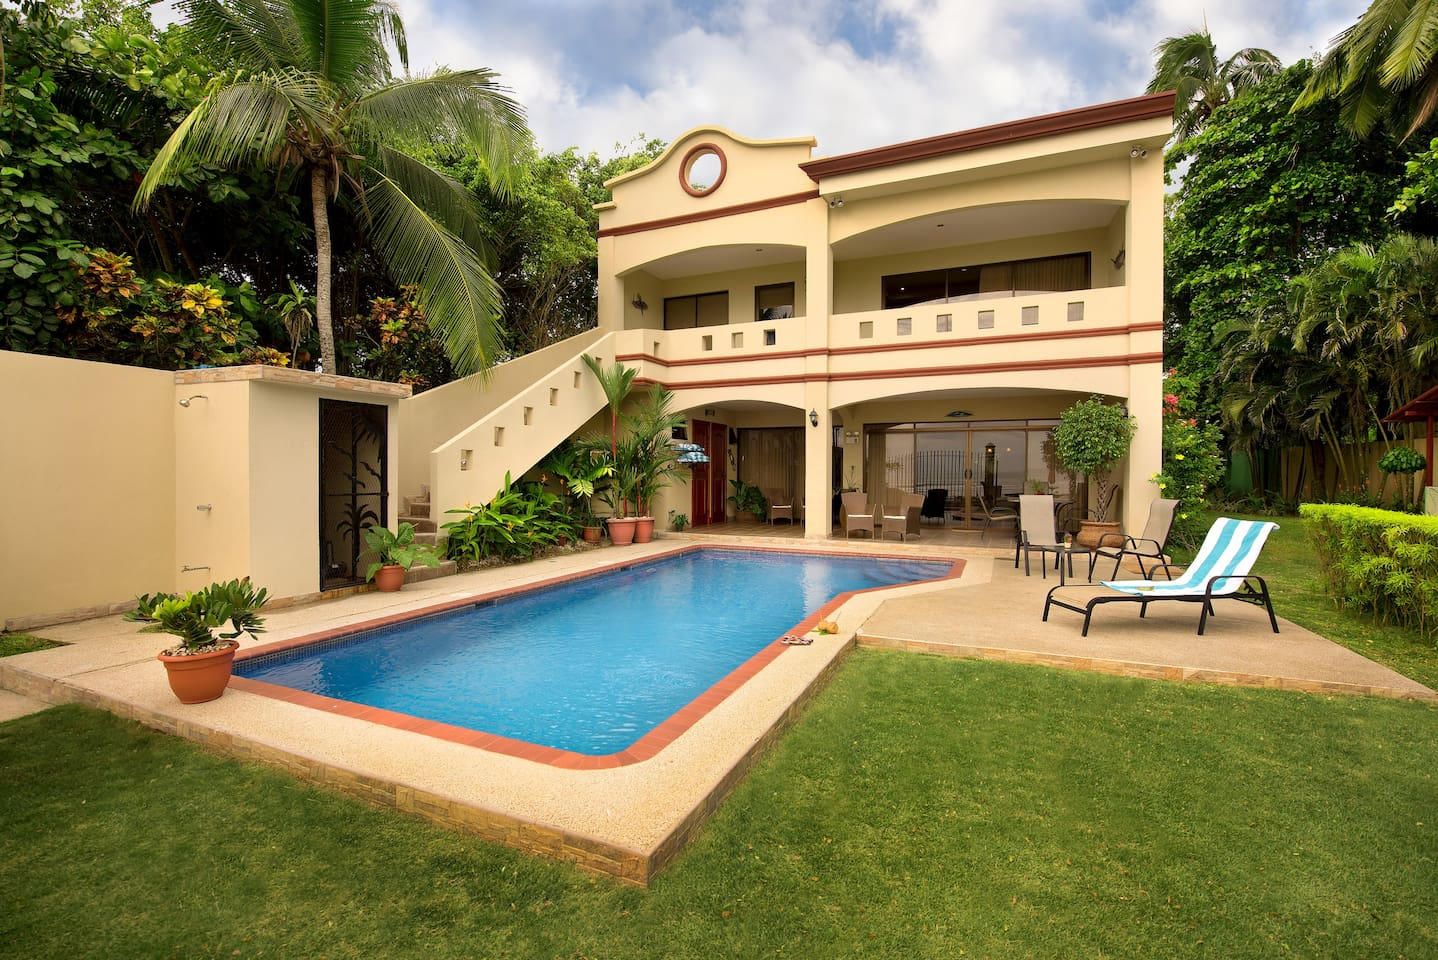 5 bedroom luxury oceanfront home on jaco beach houses for rent